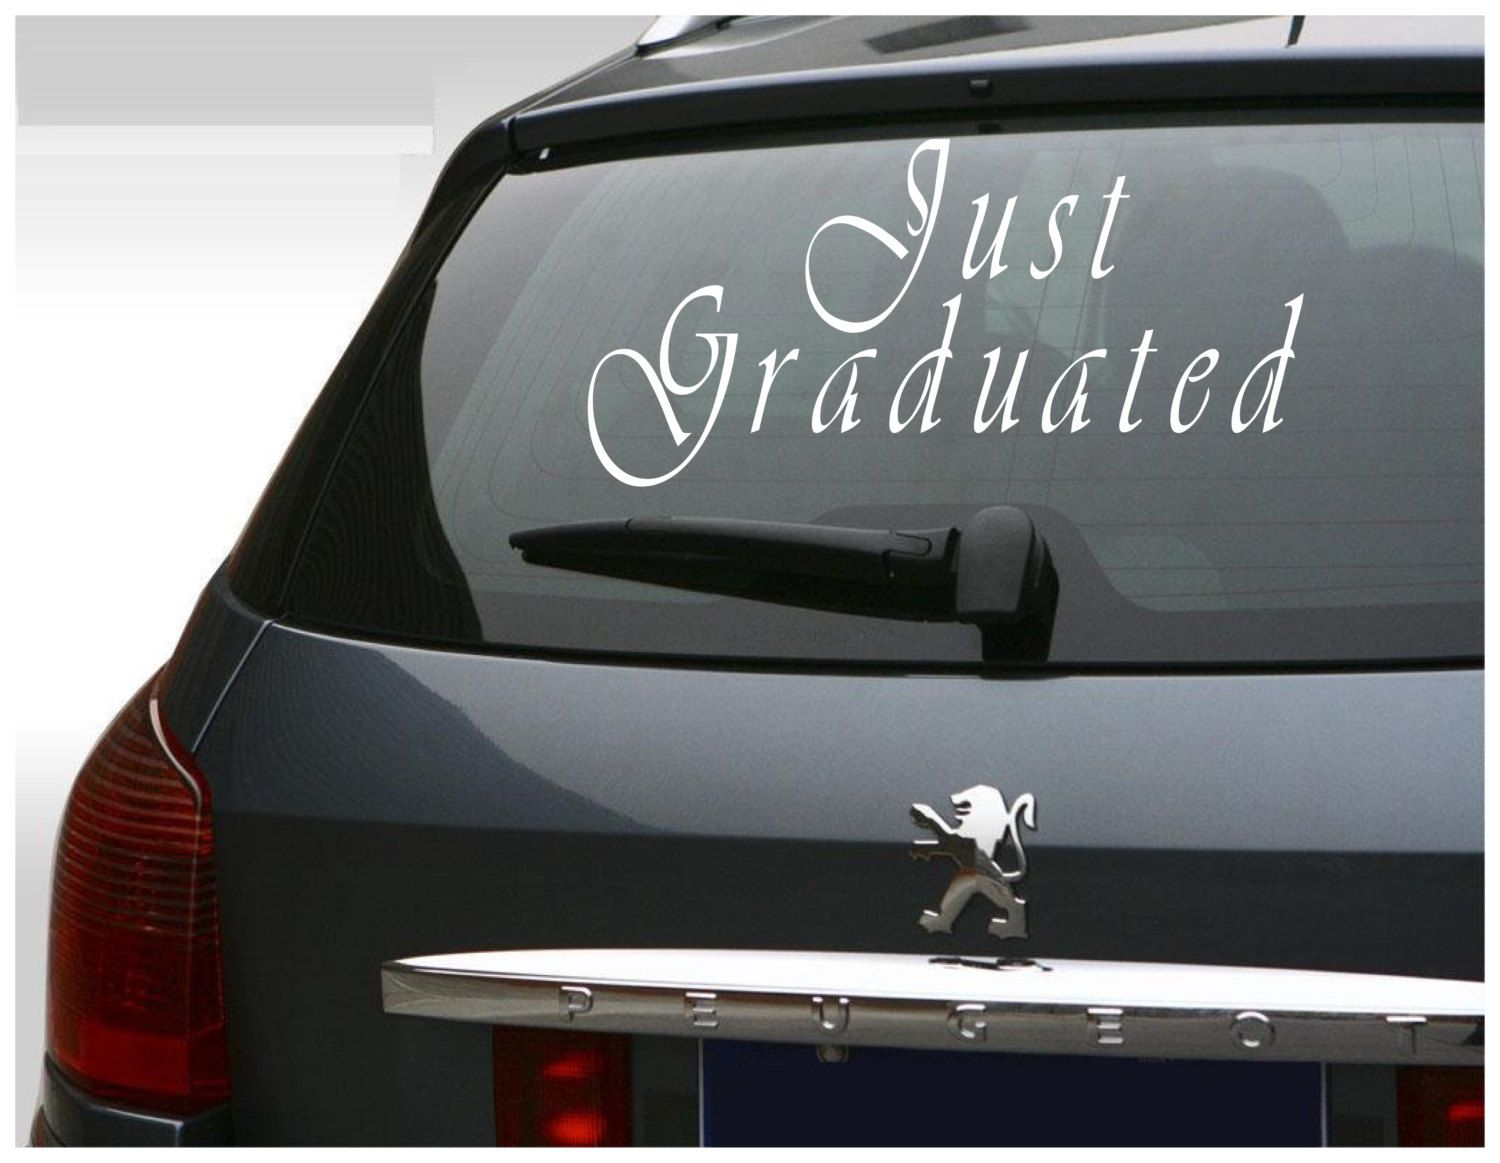 Just Graduated Vinyl Sticker Car Decal Graduation Decal - College custom vinyl decals for car windows